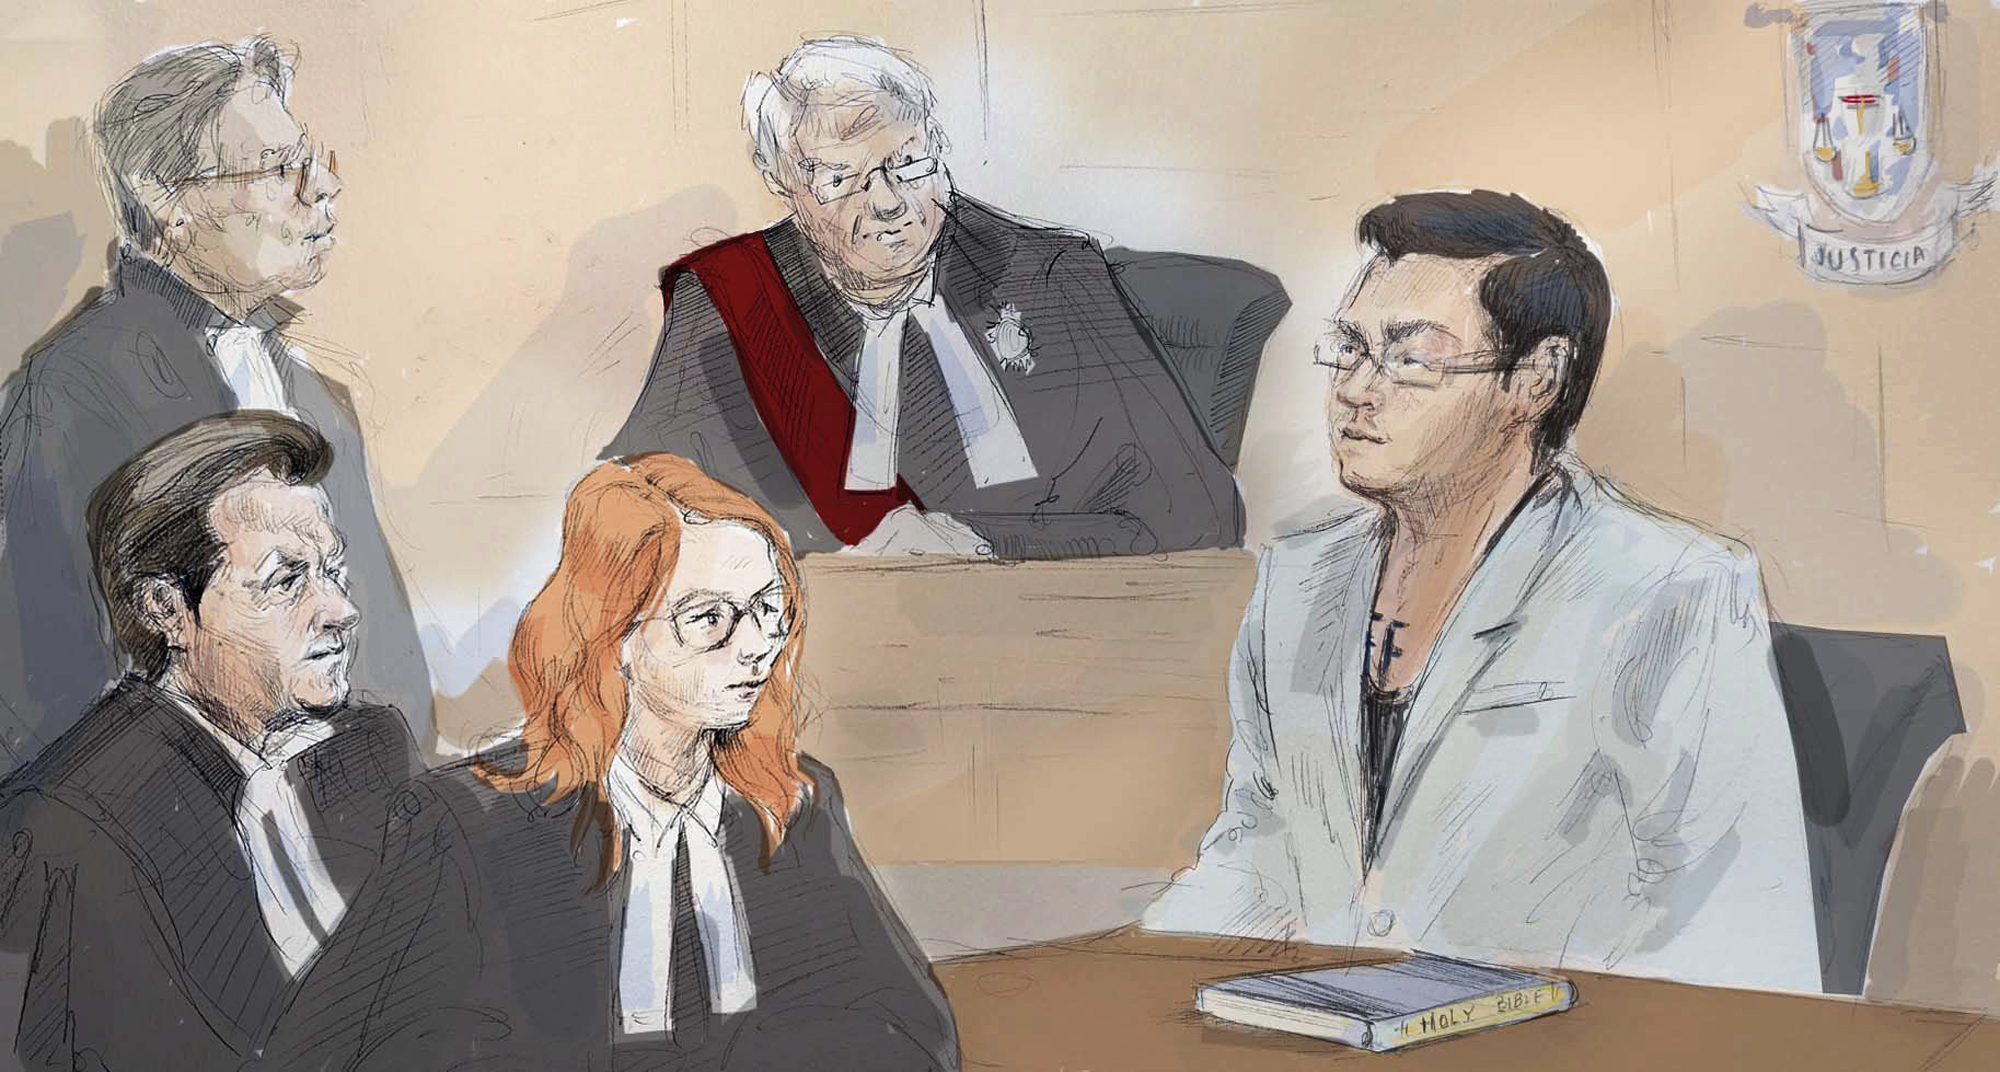 FILE - In this Wednesday, April 5, 2017, file courtroom sketch, Karim Baratov, right, addresses the court as his lawyer Amedeo Dicarlo, bottom left, Crown Heather Graham, second from left, lawyer Deepak Paradkar, top left, and Justice Alan Whitten look on during Baratov's bail hearing in Hamilton, Ontario, Canada. Baratov, accused in a massive hack of Yahoo emails, agreed Friday, Aug. 18, 2017, to forgo his extradition hearing and go face the charges in the United States. (Alexandra Newbould/Courtesy of The Canadian Press via AP, File)